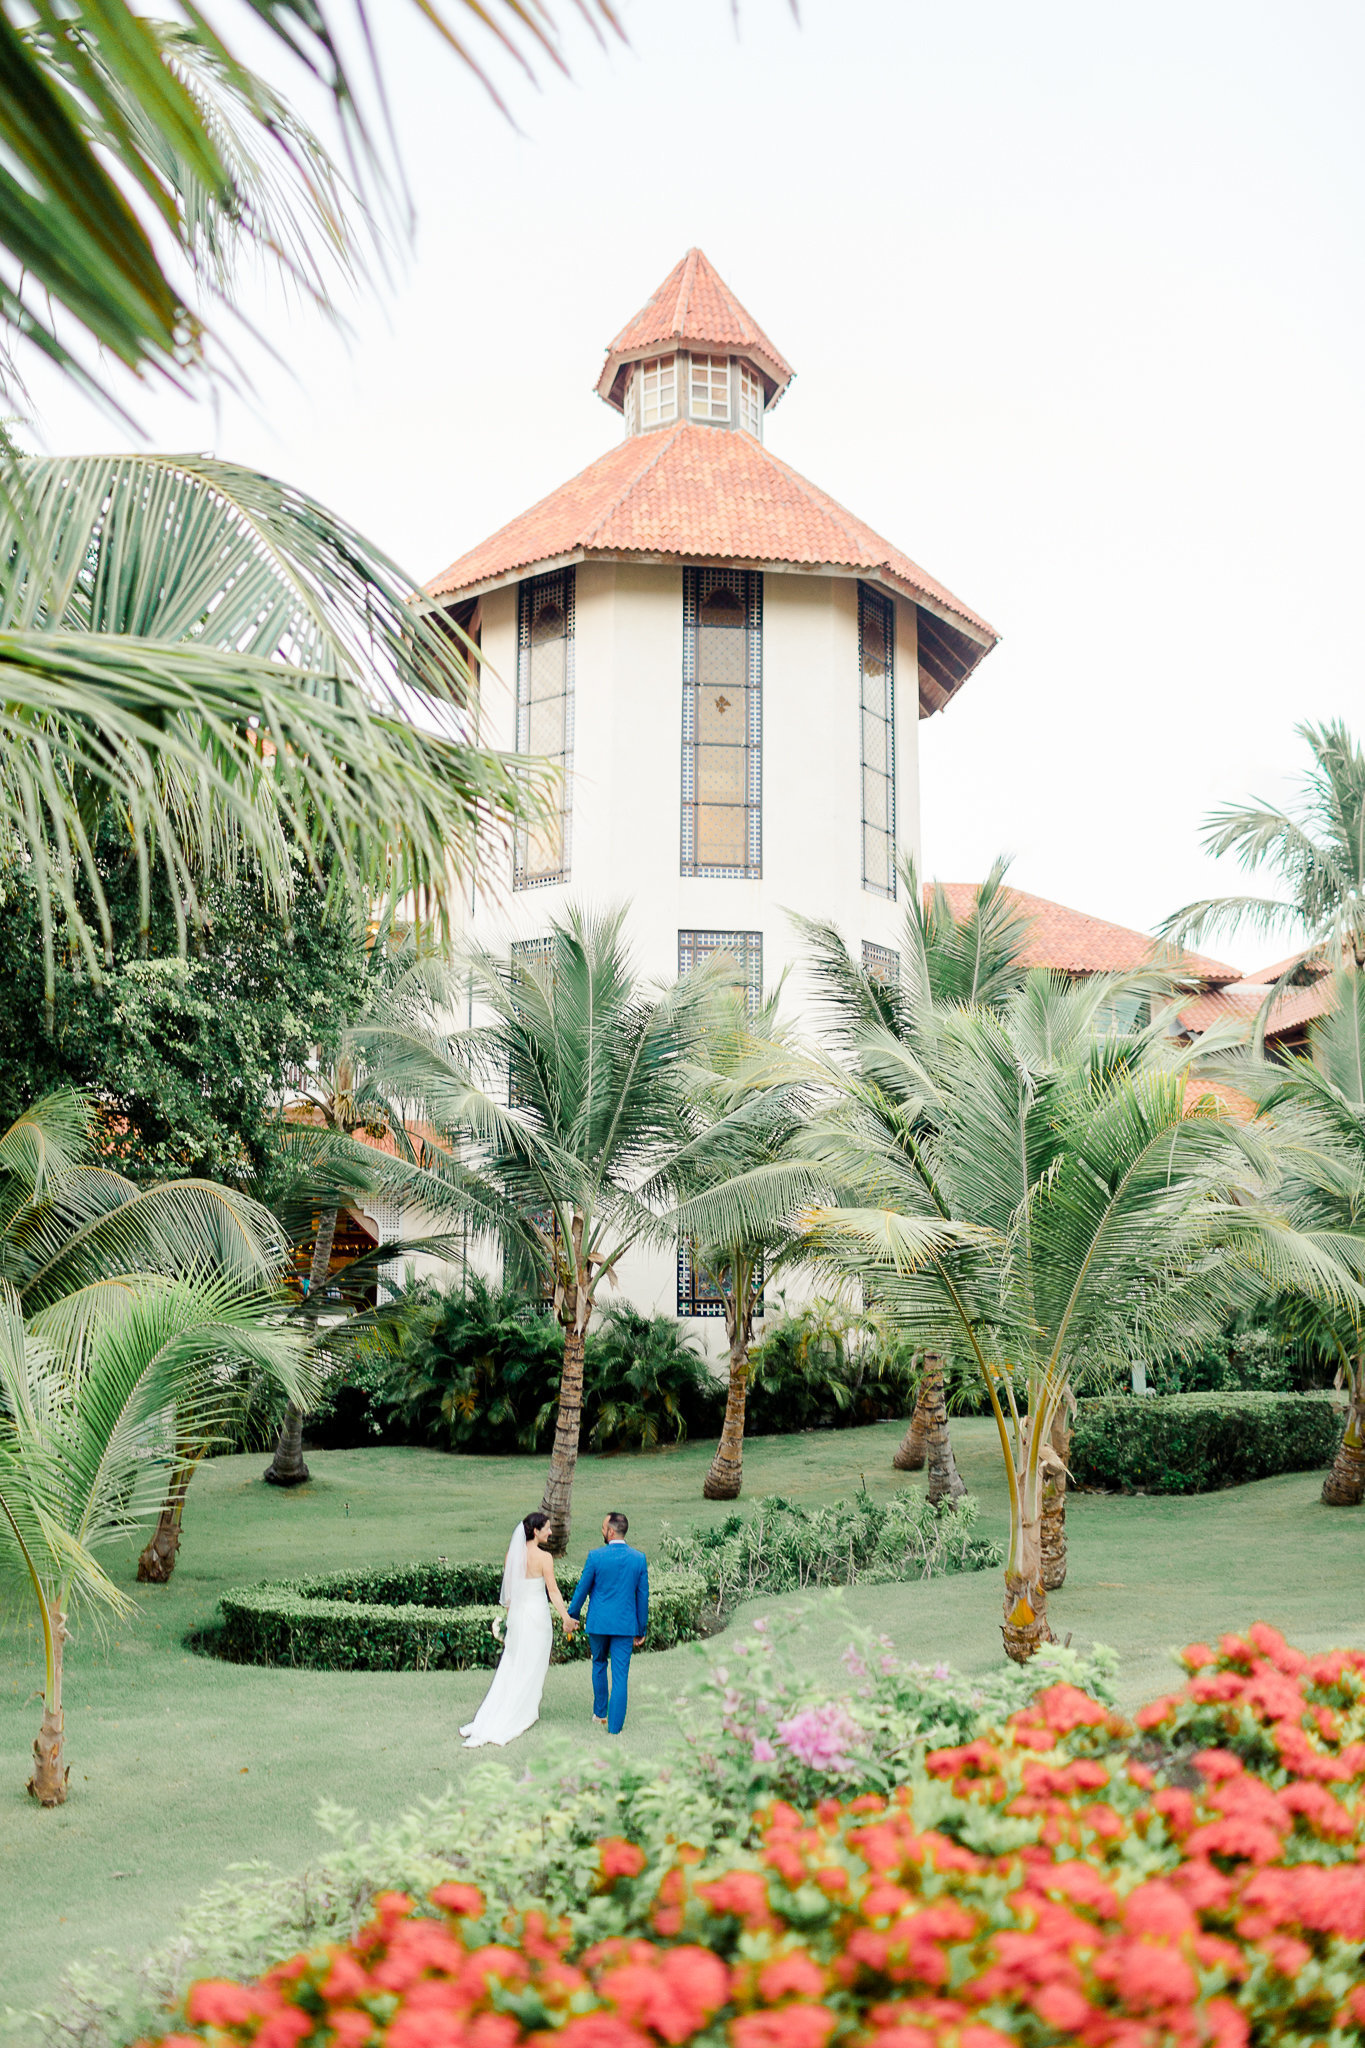 photographe-mariage-punta-cana-republique-dominicaine-lisa-renault-photographie-wedding-destination-photographer-71